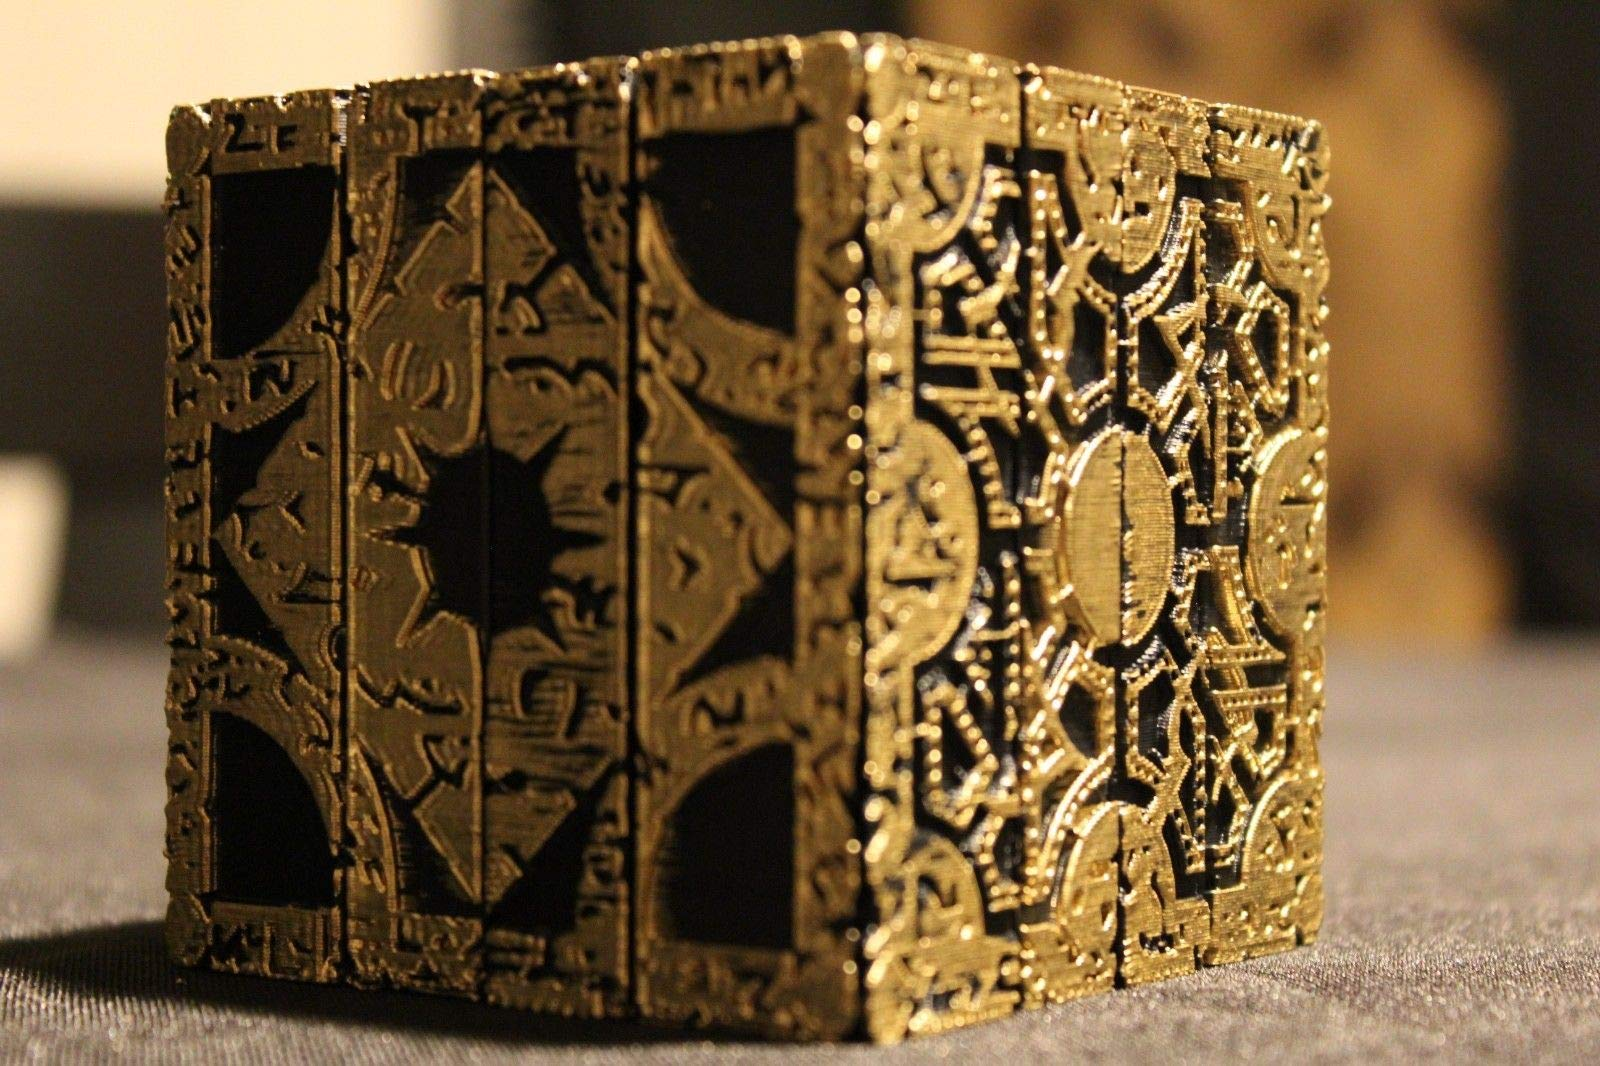 Hellraiser Cube Puzzle Box Lament Configuration Functional Pinhead Prop Horror by Unknown